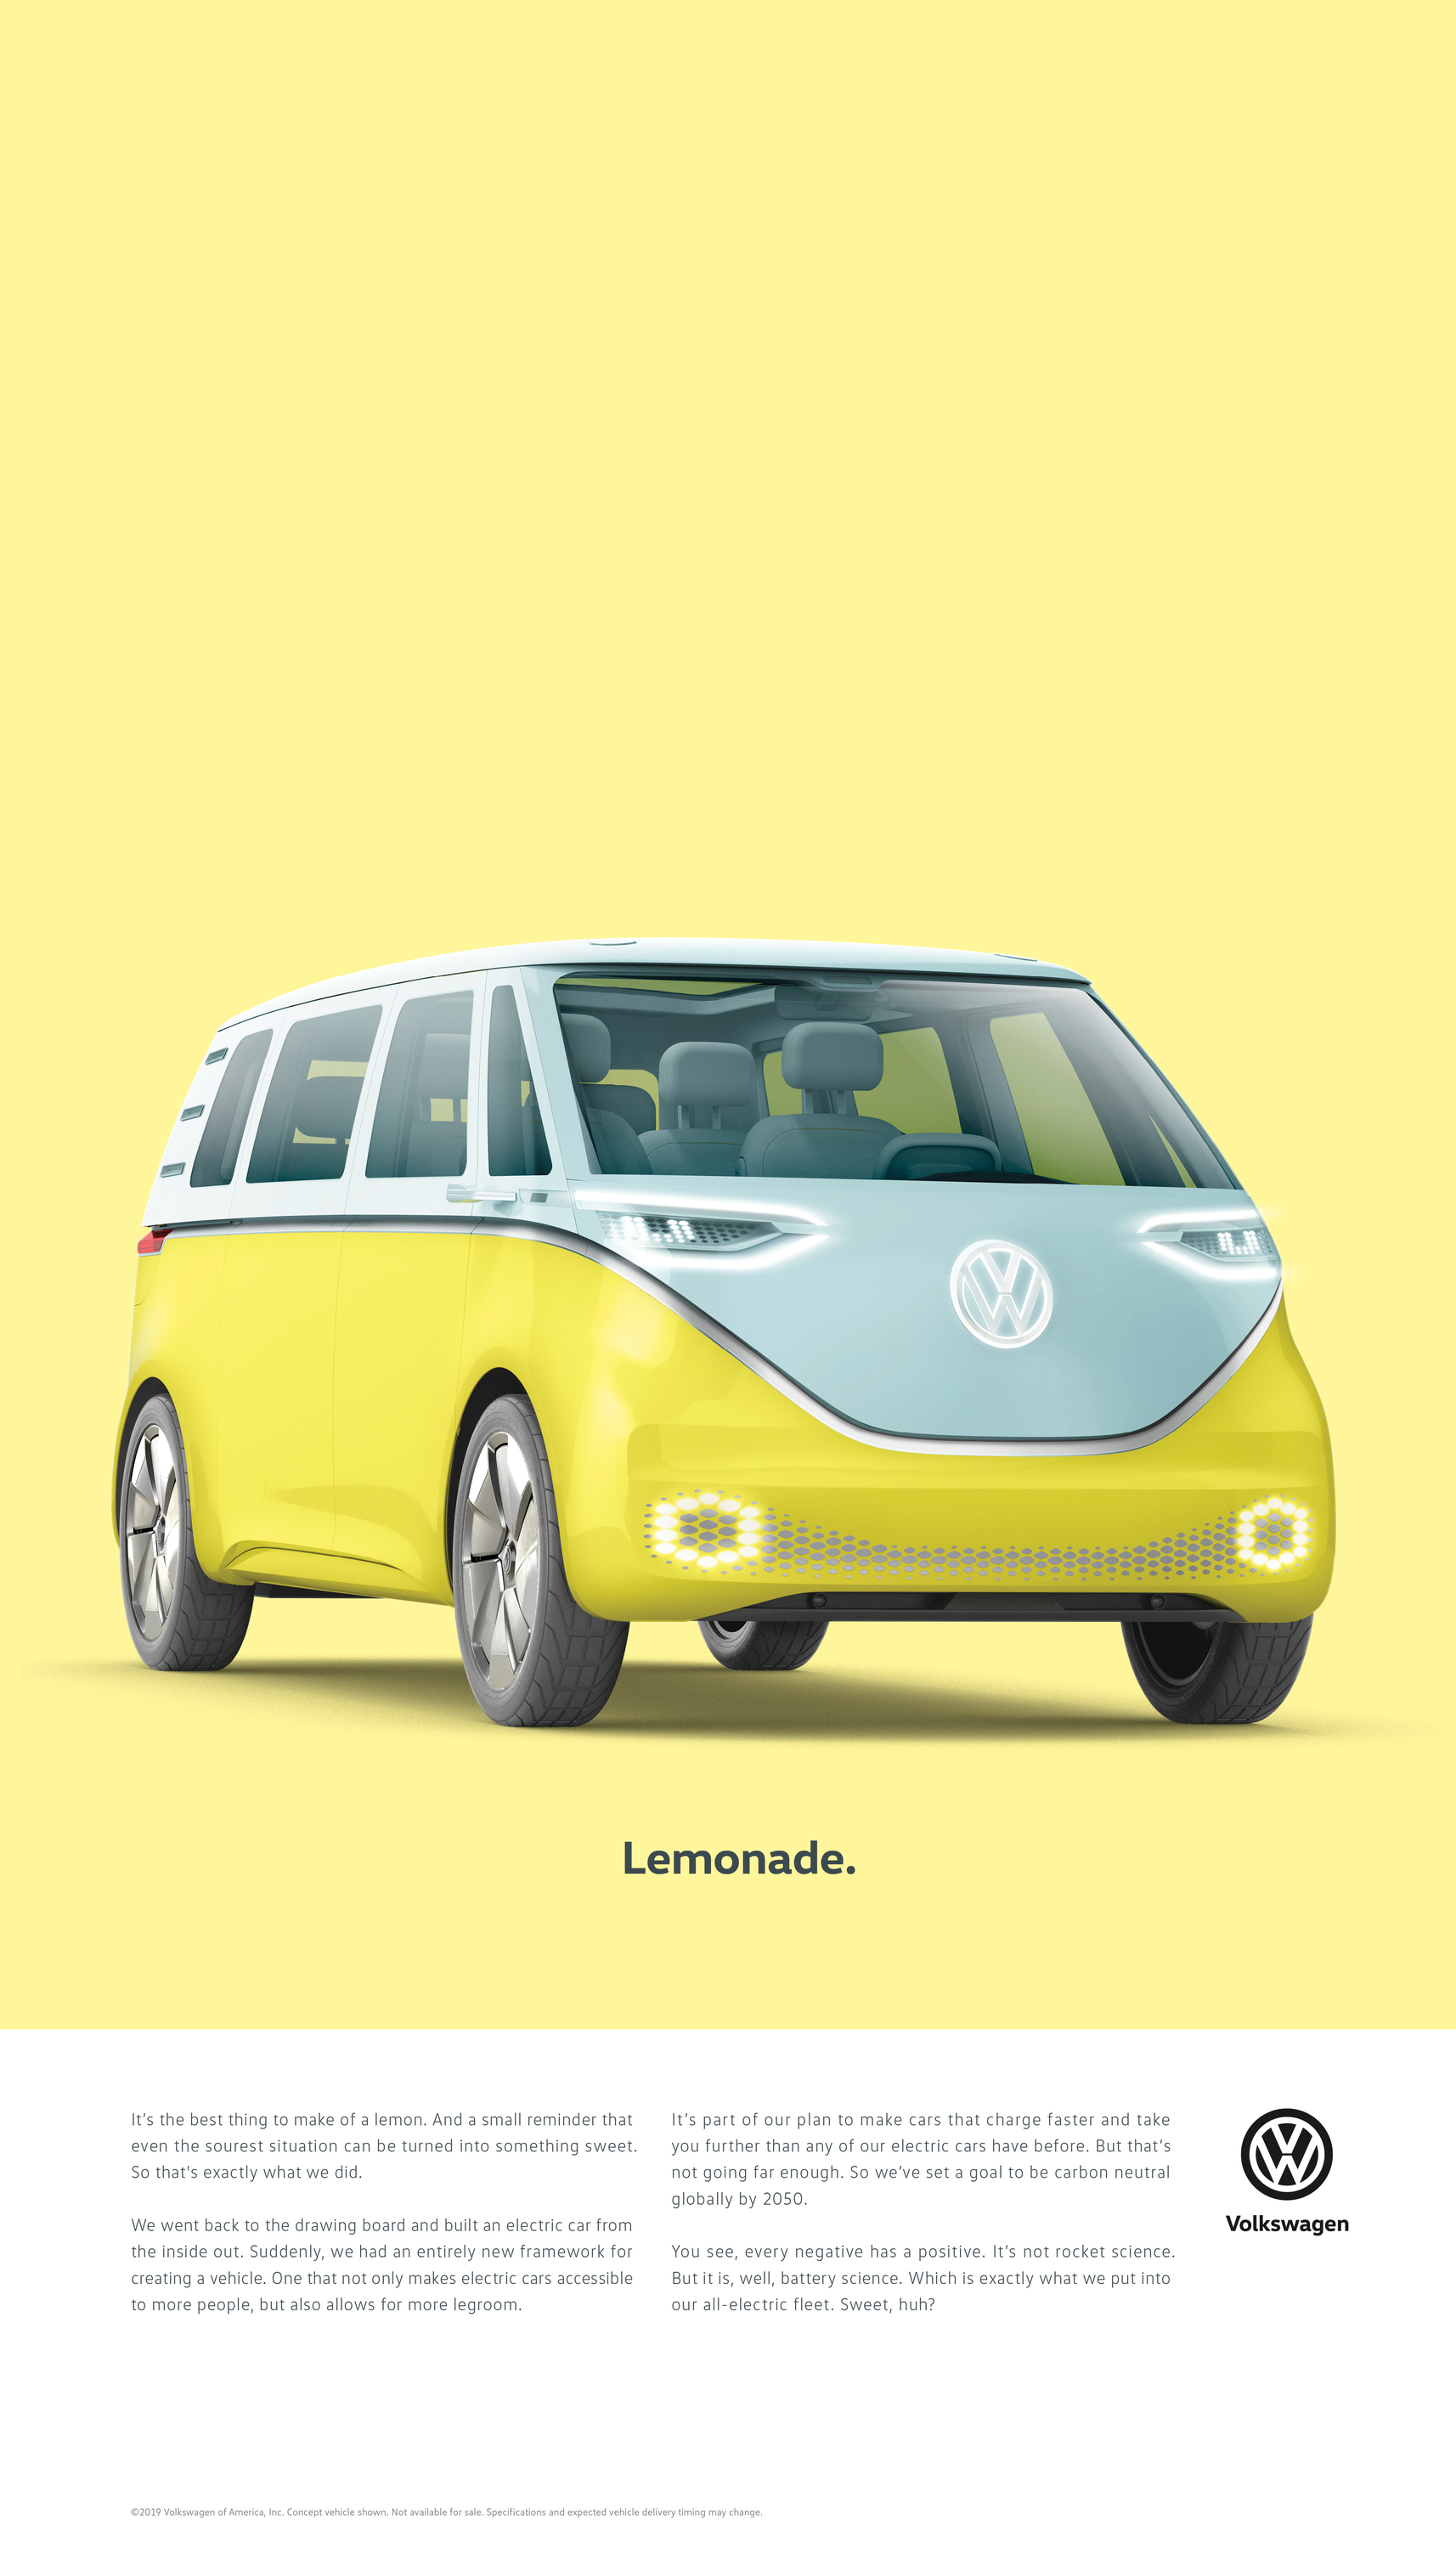 VW Lemonade